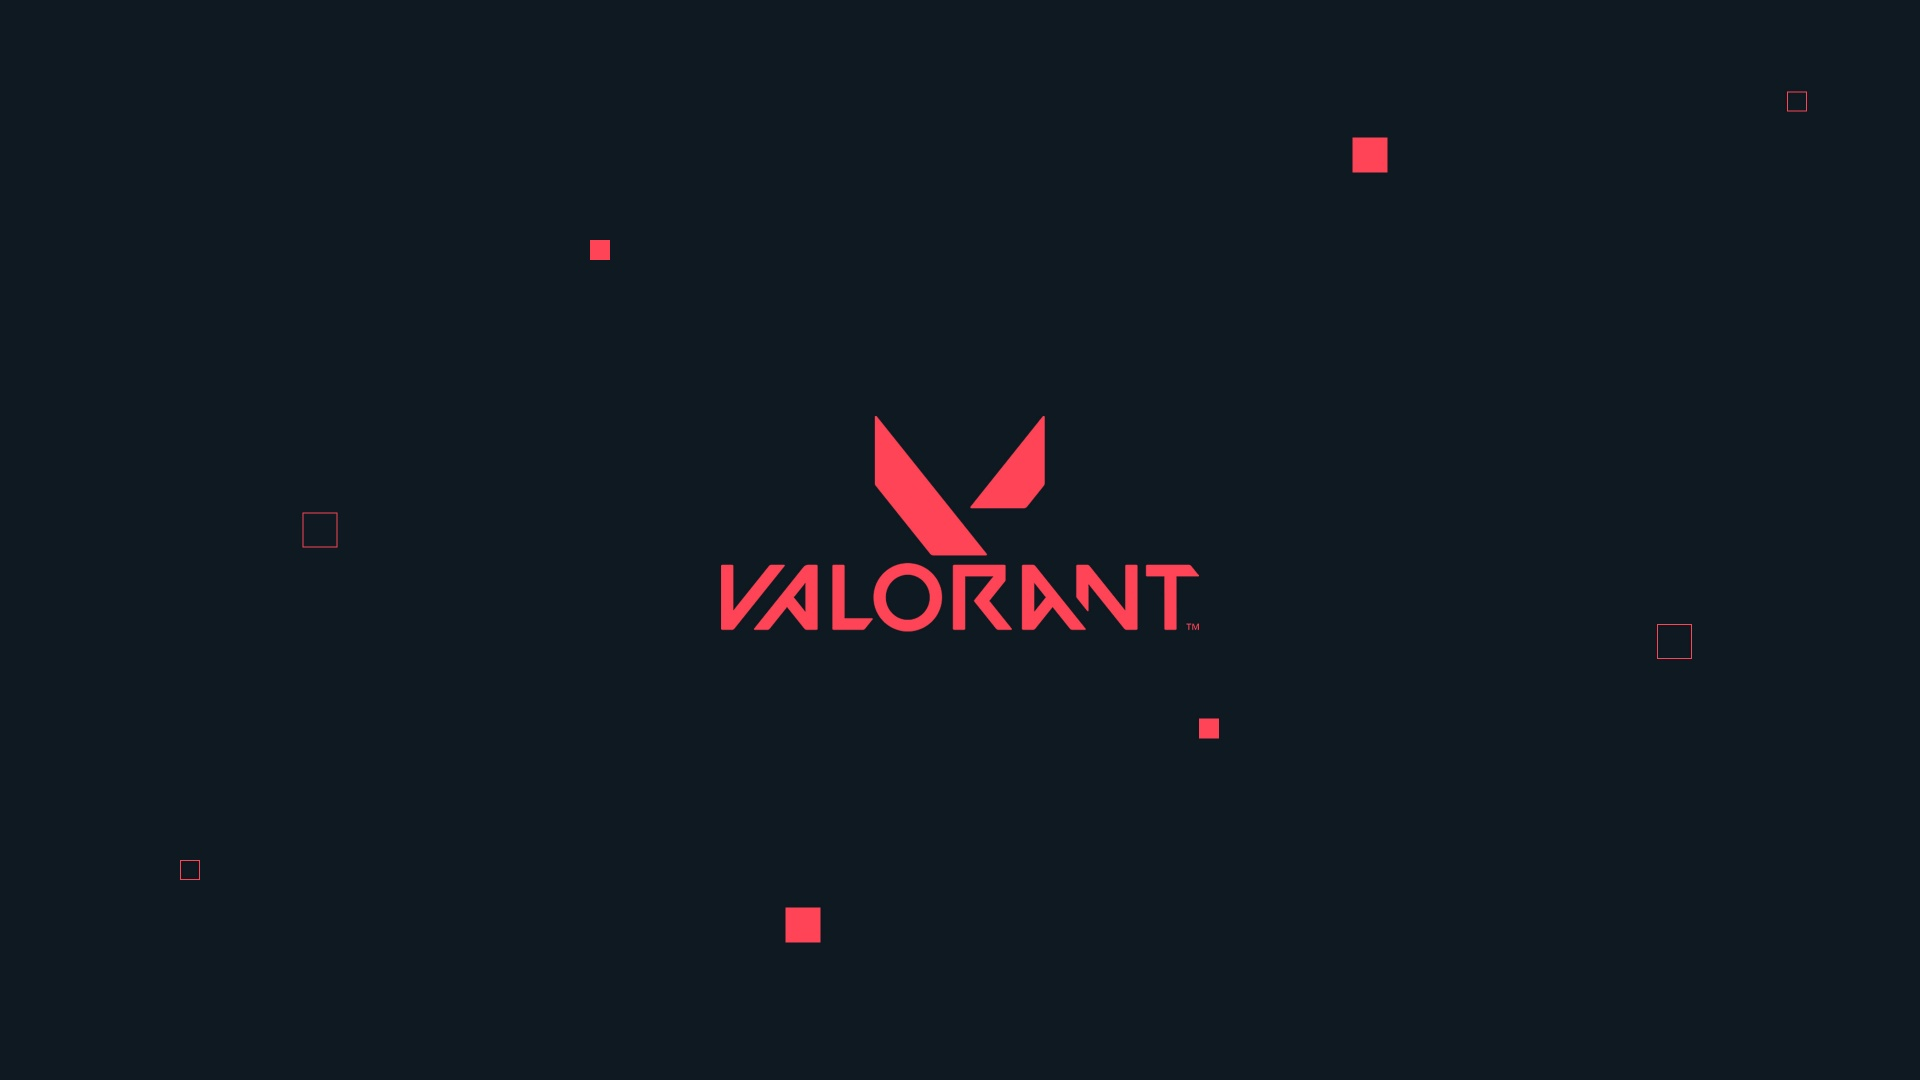 Valorant 4k Wallpaper Pc Games 2020 Games Black Dark 1267